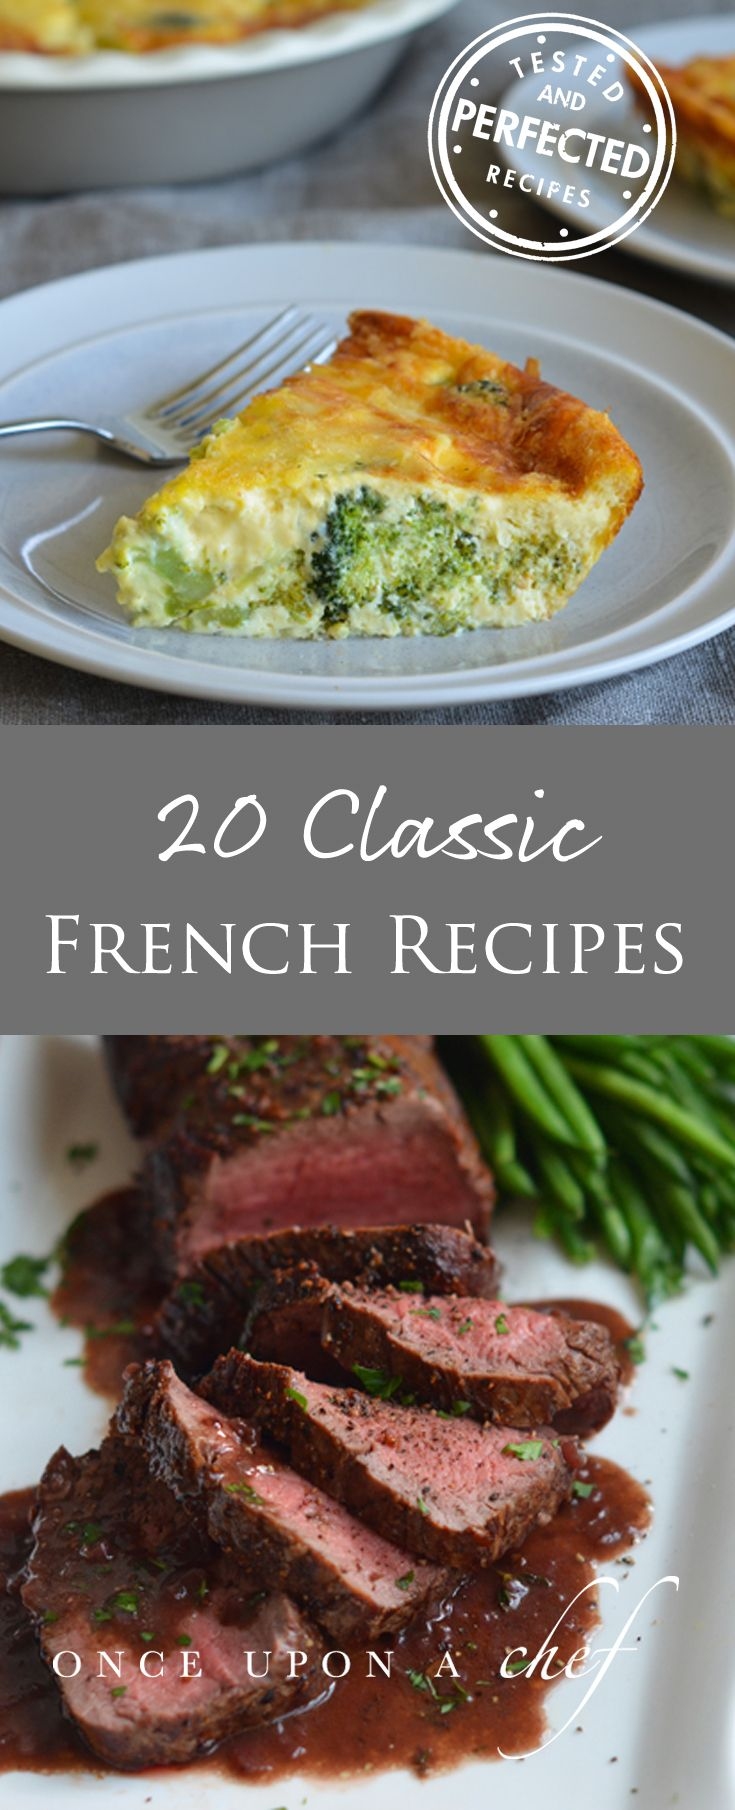 Ooh La La! 20 Classic French Recipes You'll Swoon Over